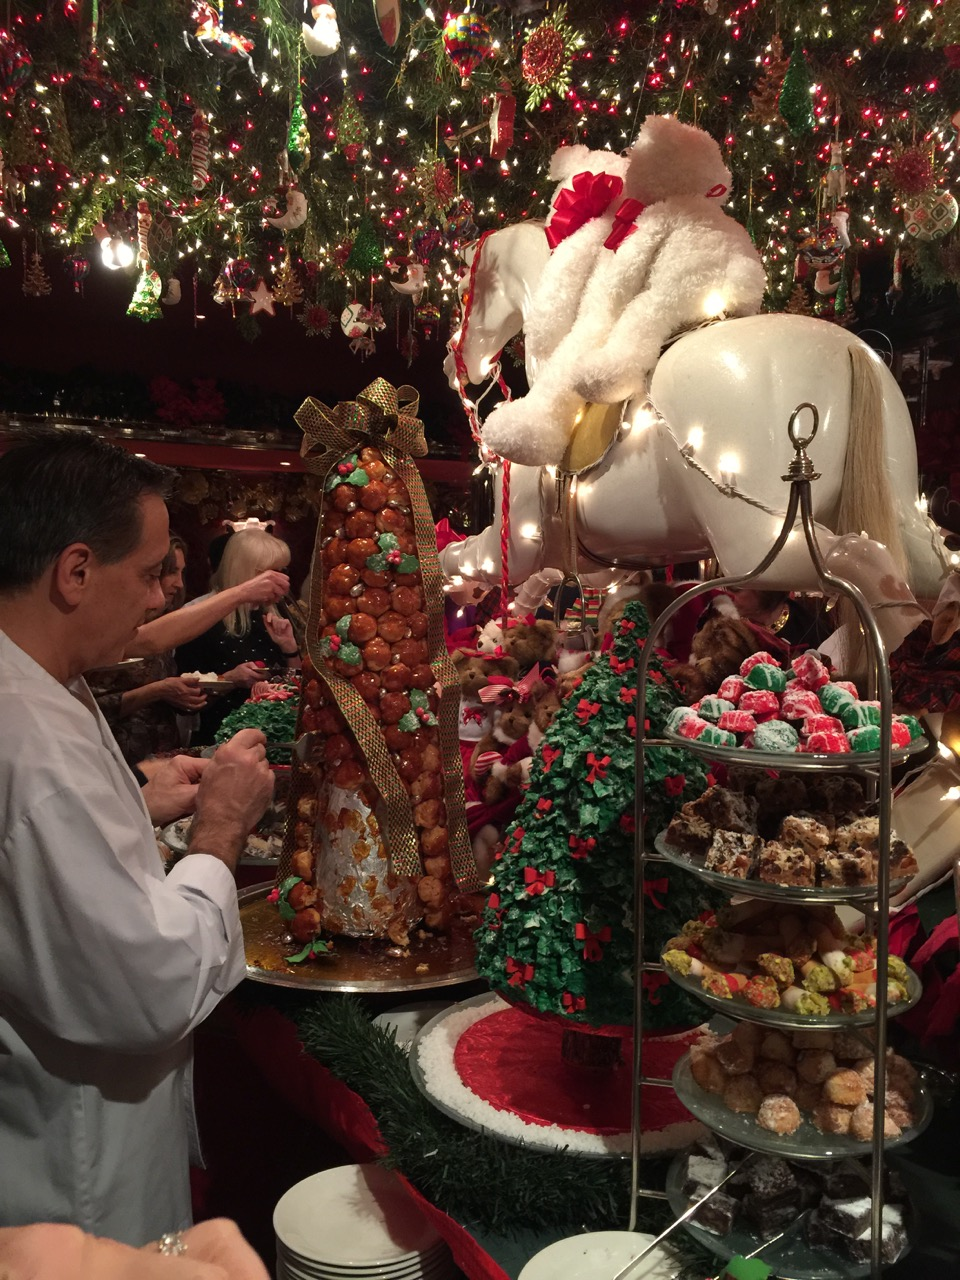 Chef Stephen Mallina adjusting the croquembouch at the Christmas dessert buffet